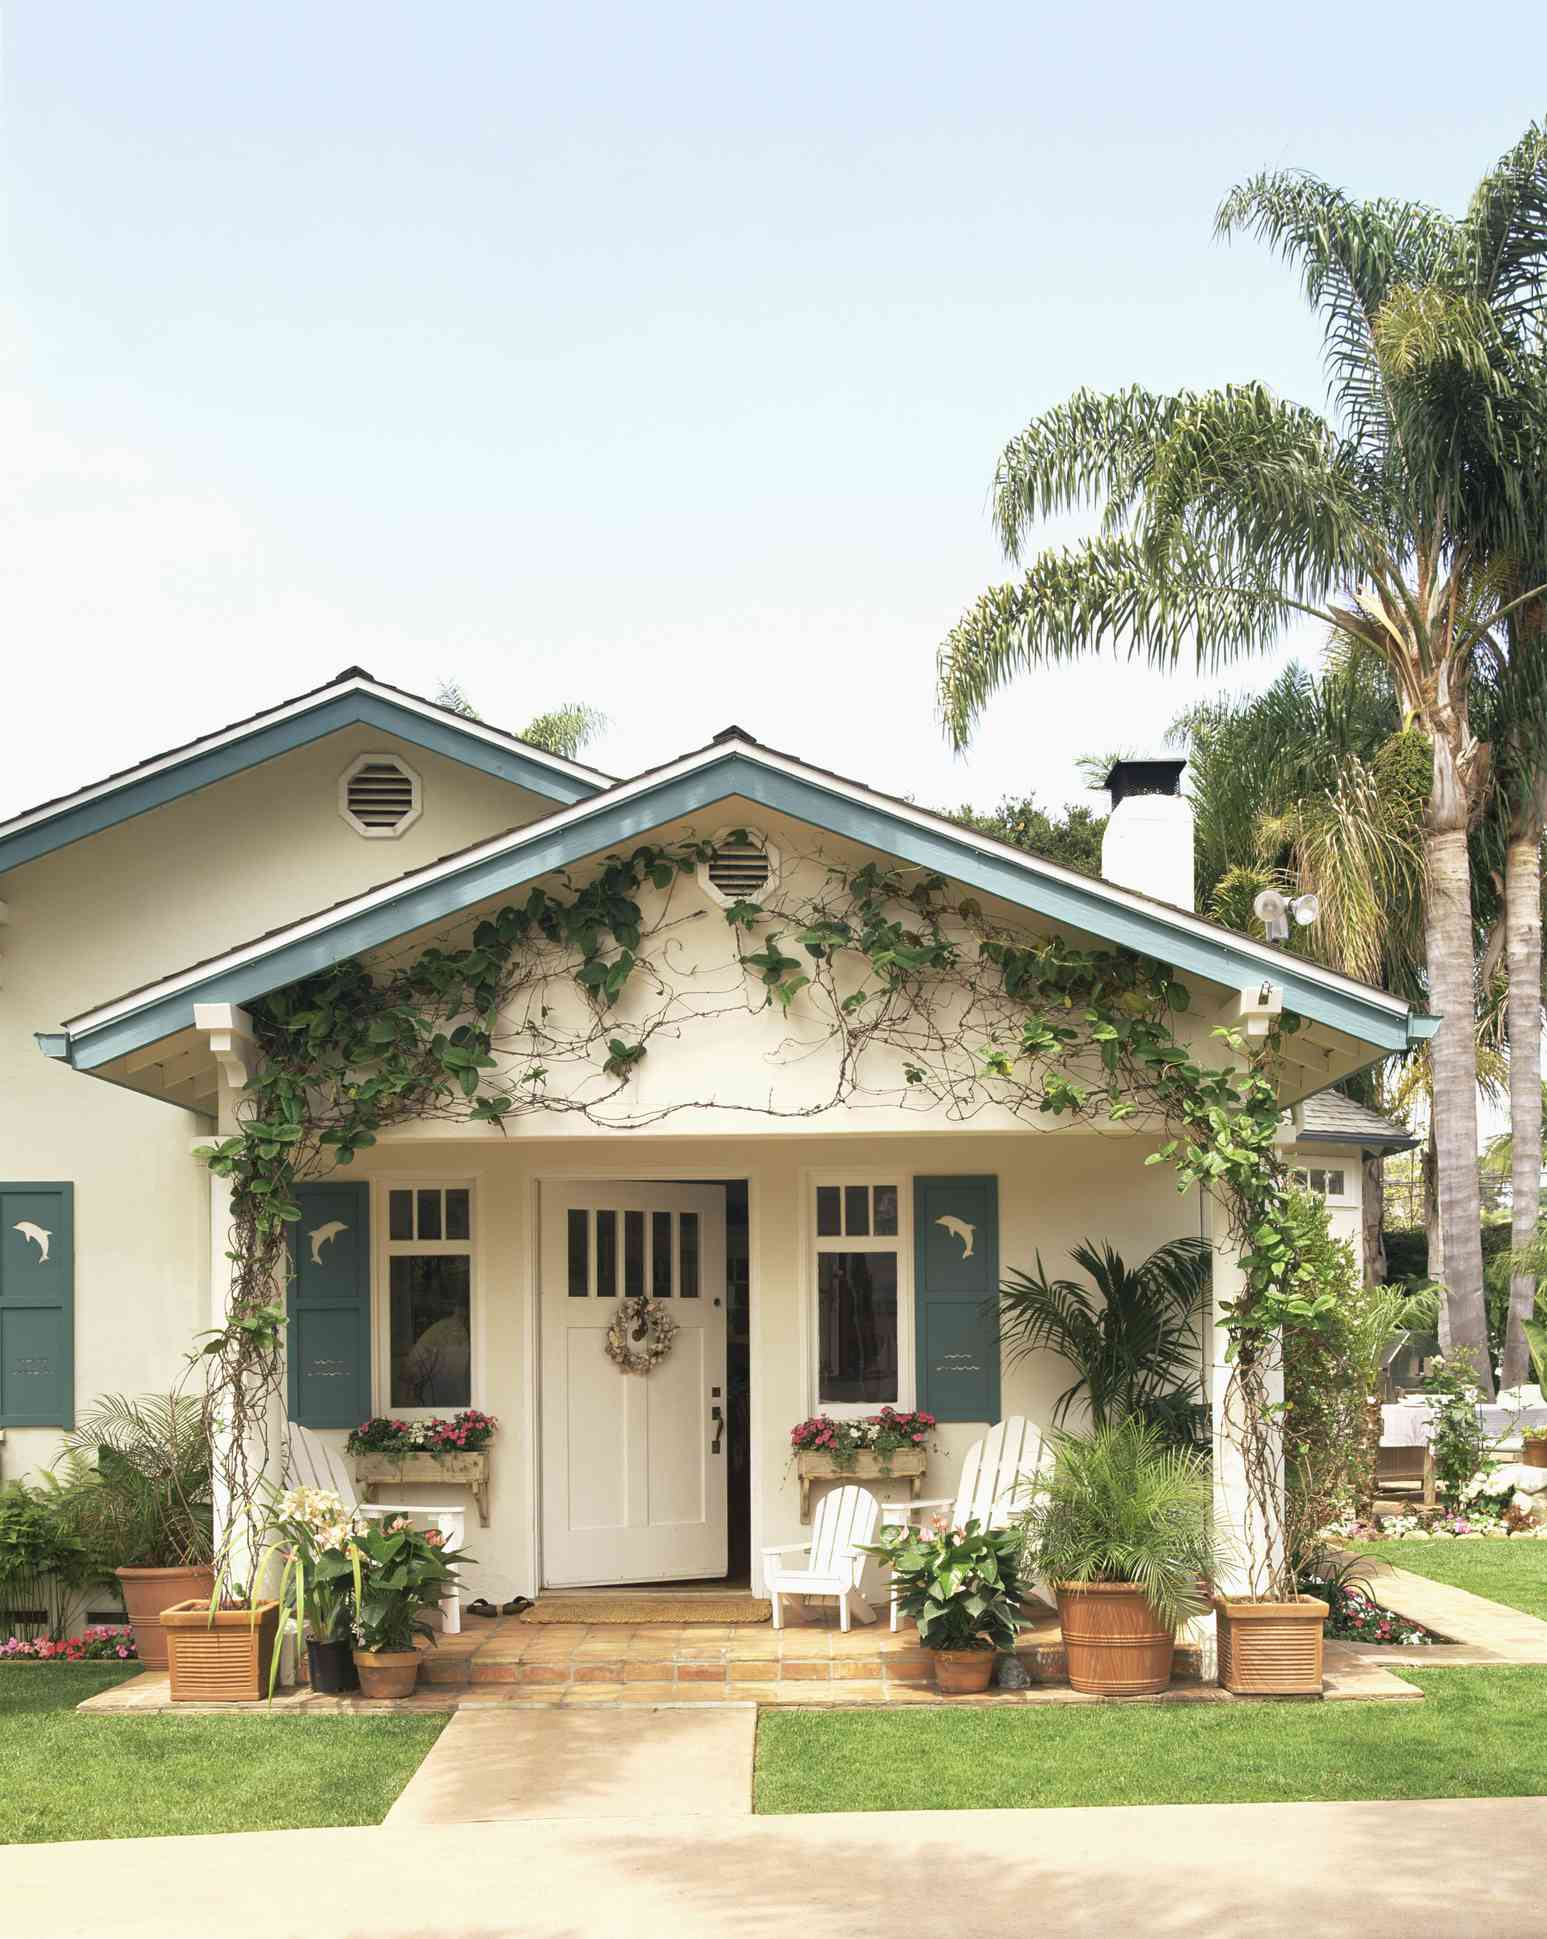 most popular home styles - bungalow style home in california